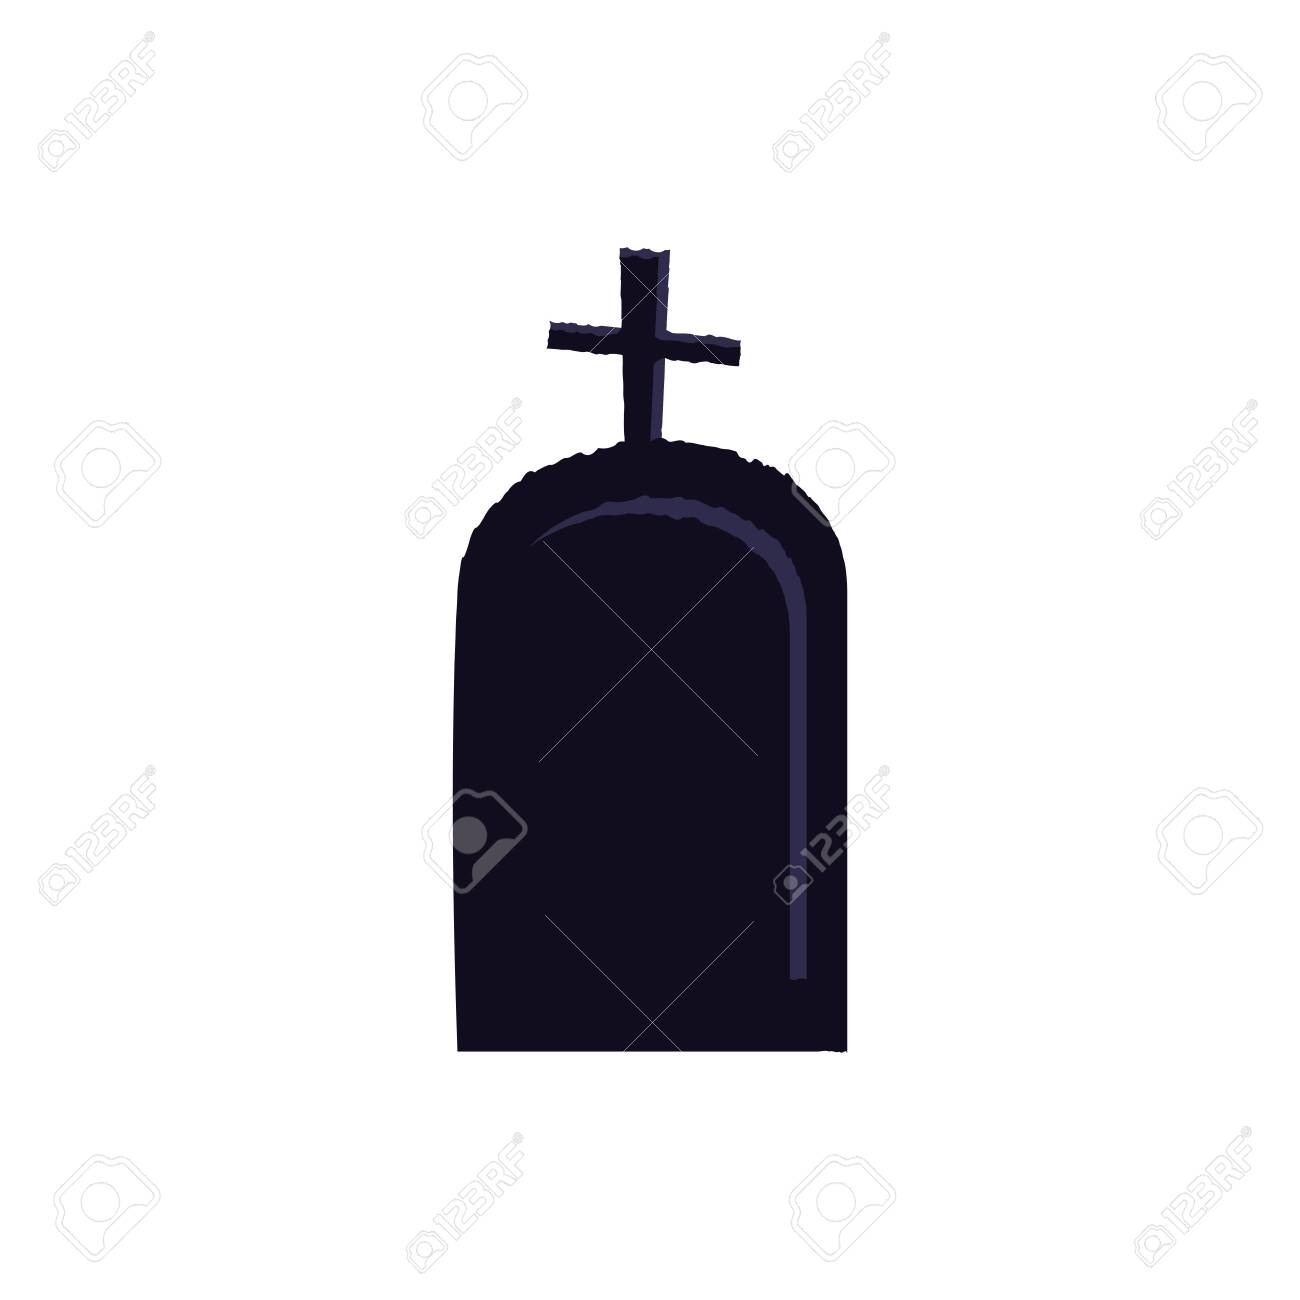 halloween tomb of cemetery isolated icon vector illustration design - 130185378